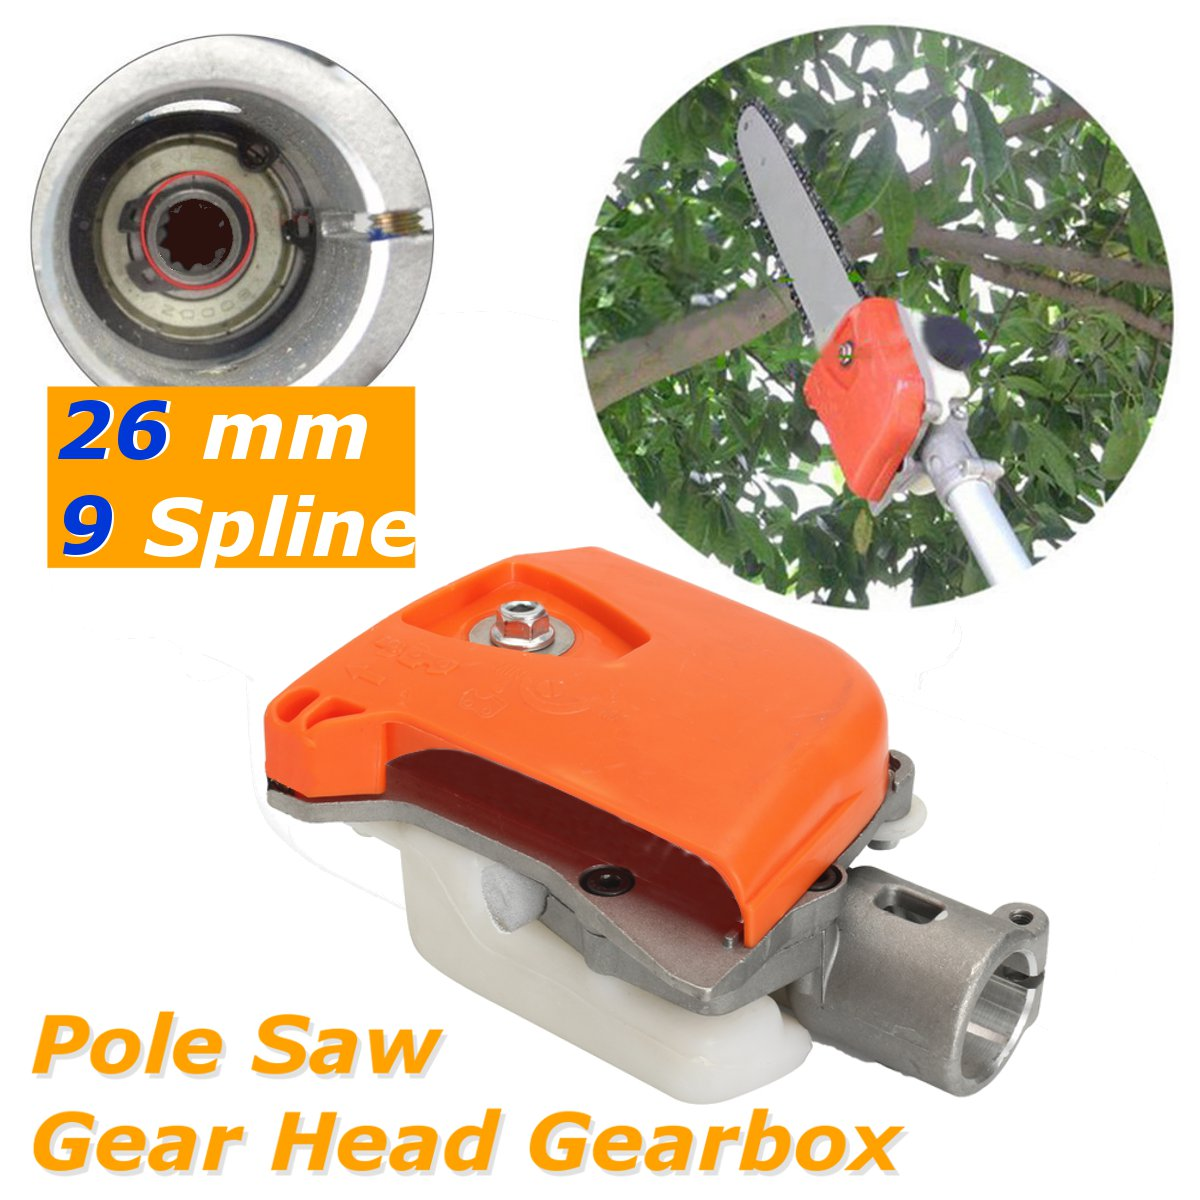 26mm 9 Gears Pole Saw Chainsaw Gear Head Gearbox for Stihl Trimmer